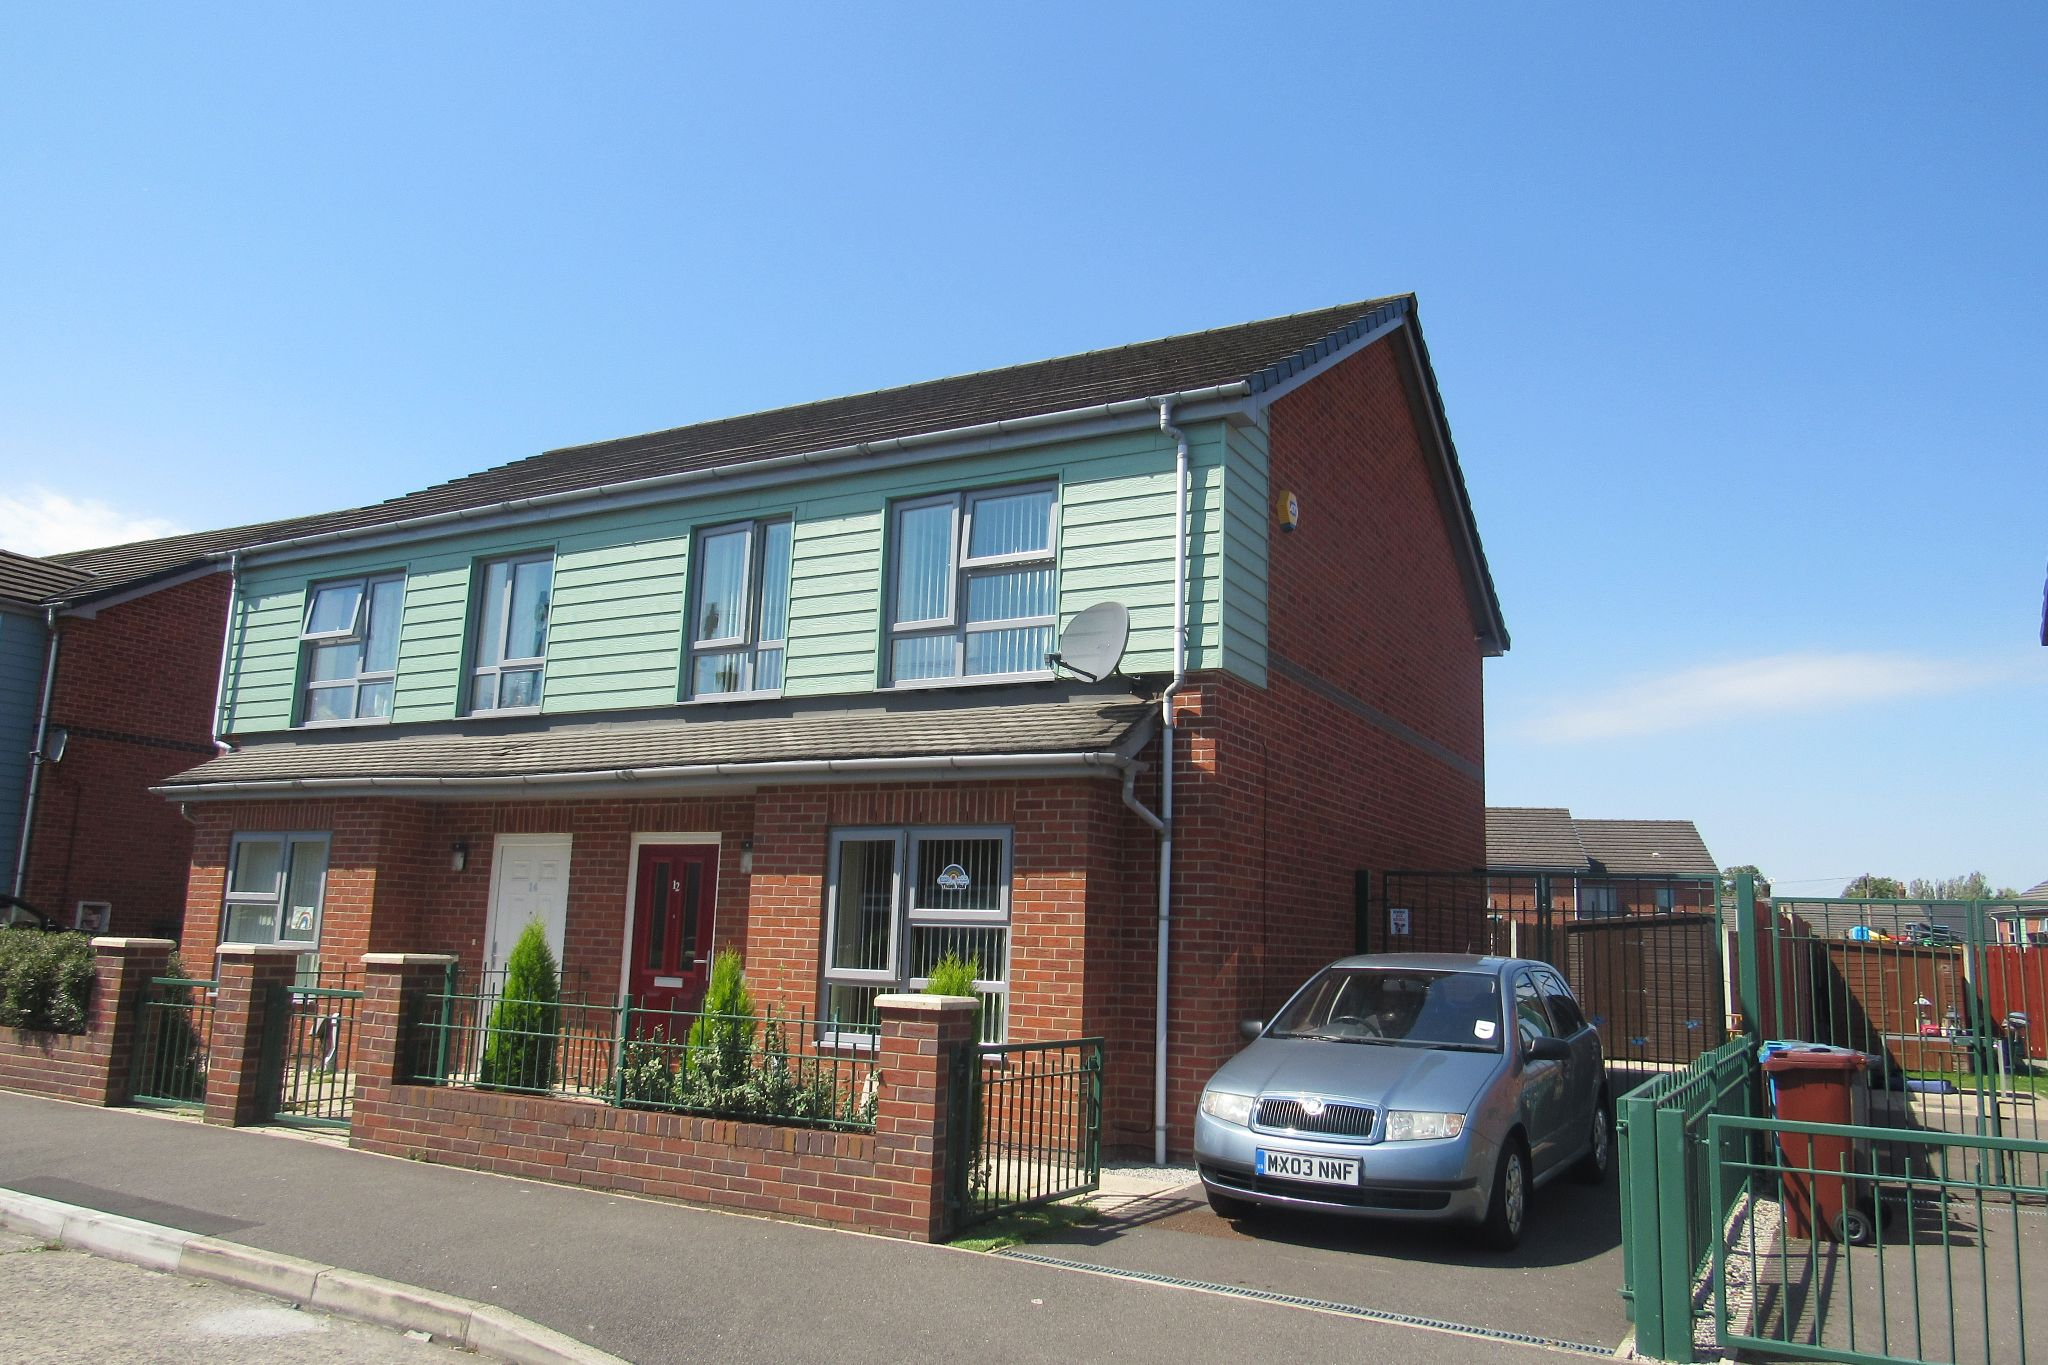 3 bedroom semi-detached house SSTC in Manchester - Photograph 2.